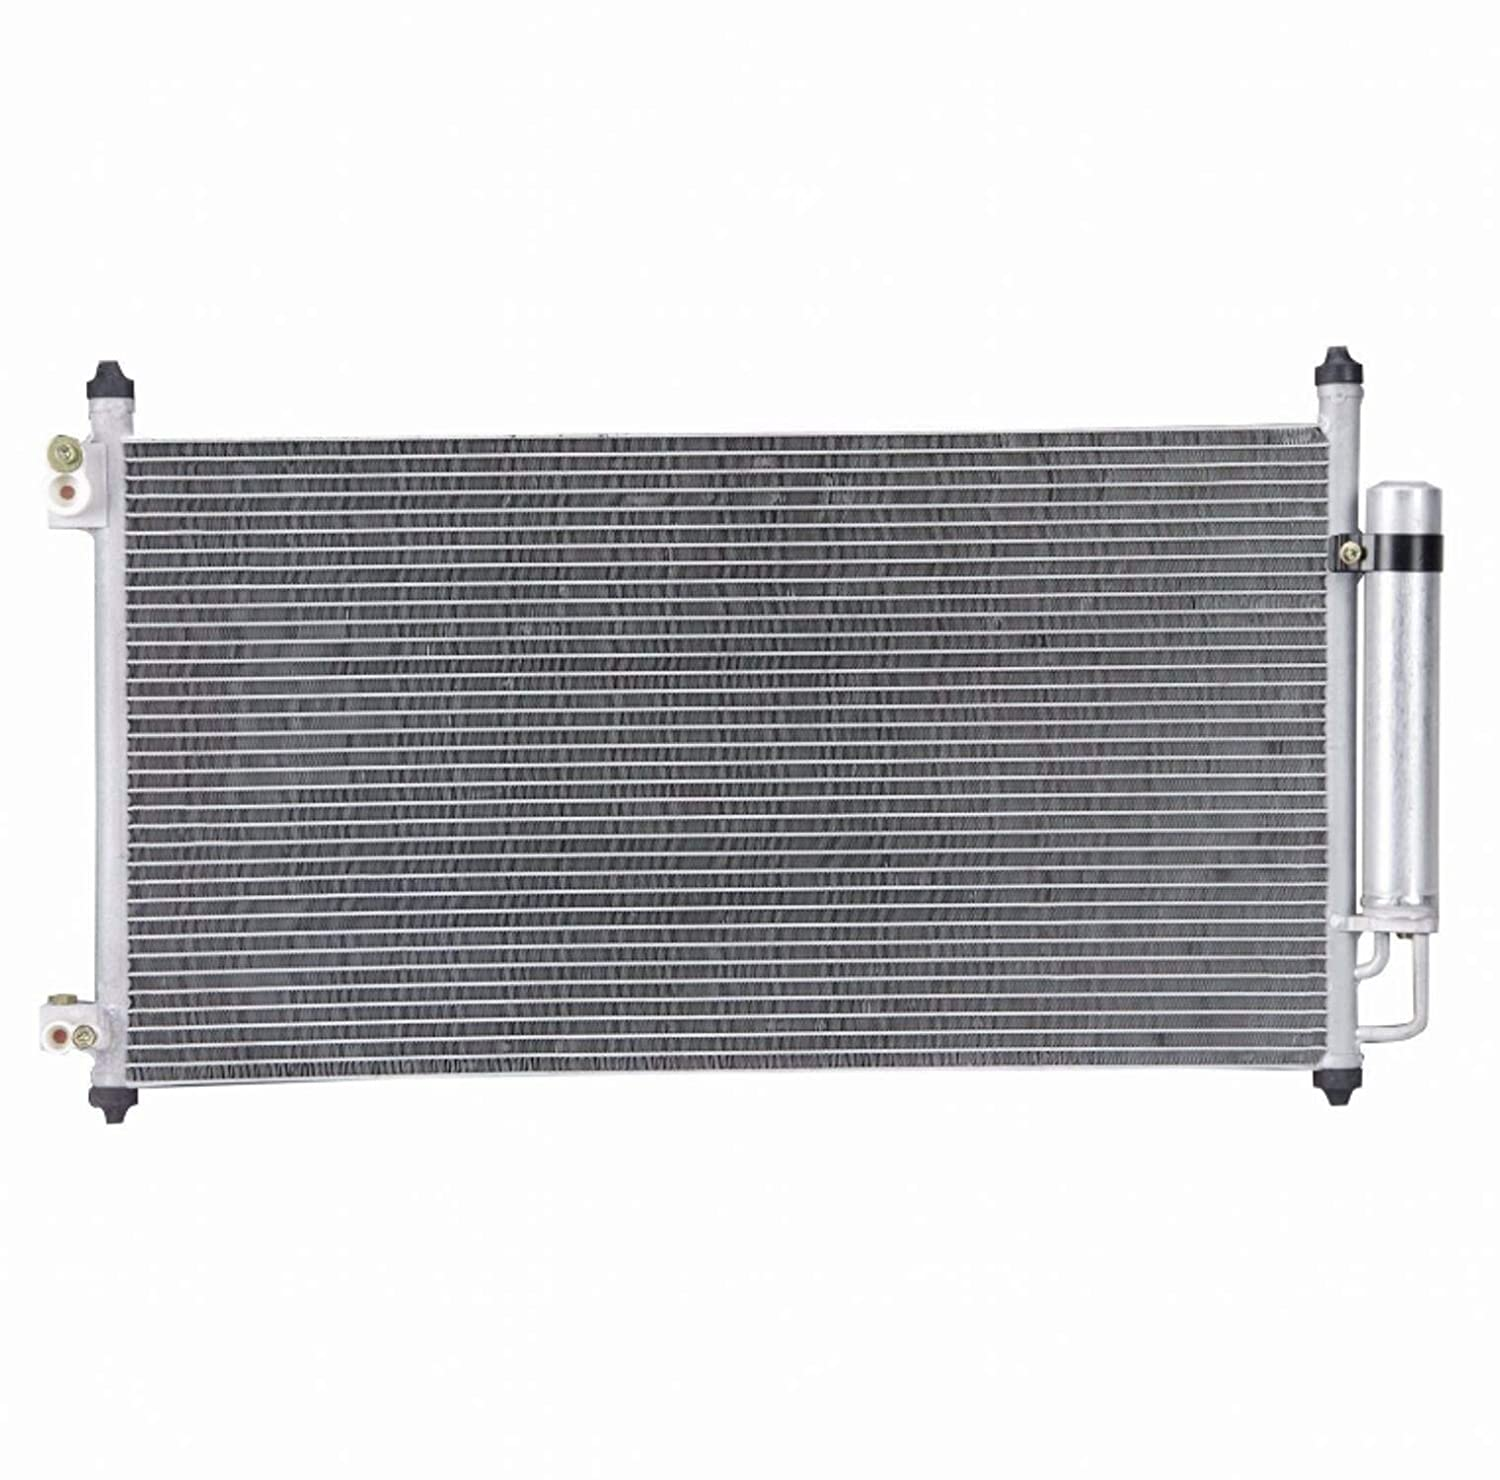 ZR A//C Air Condition Condenser All Aluminum Assembly For 2004-2008 Acura TL 3.2L 2007-2008 Acura TL 3.5L V6 5//8 Core Thickness